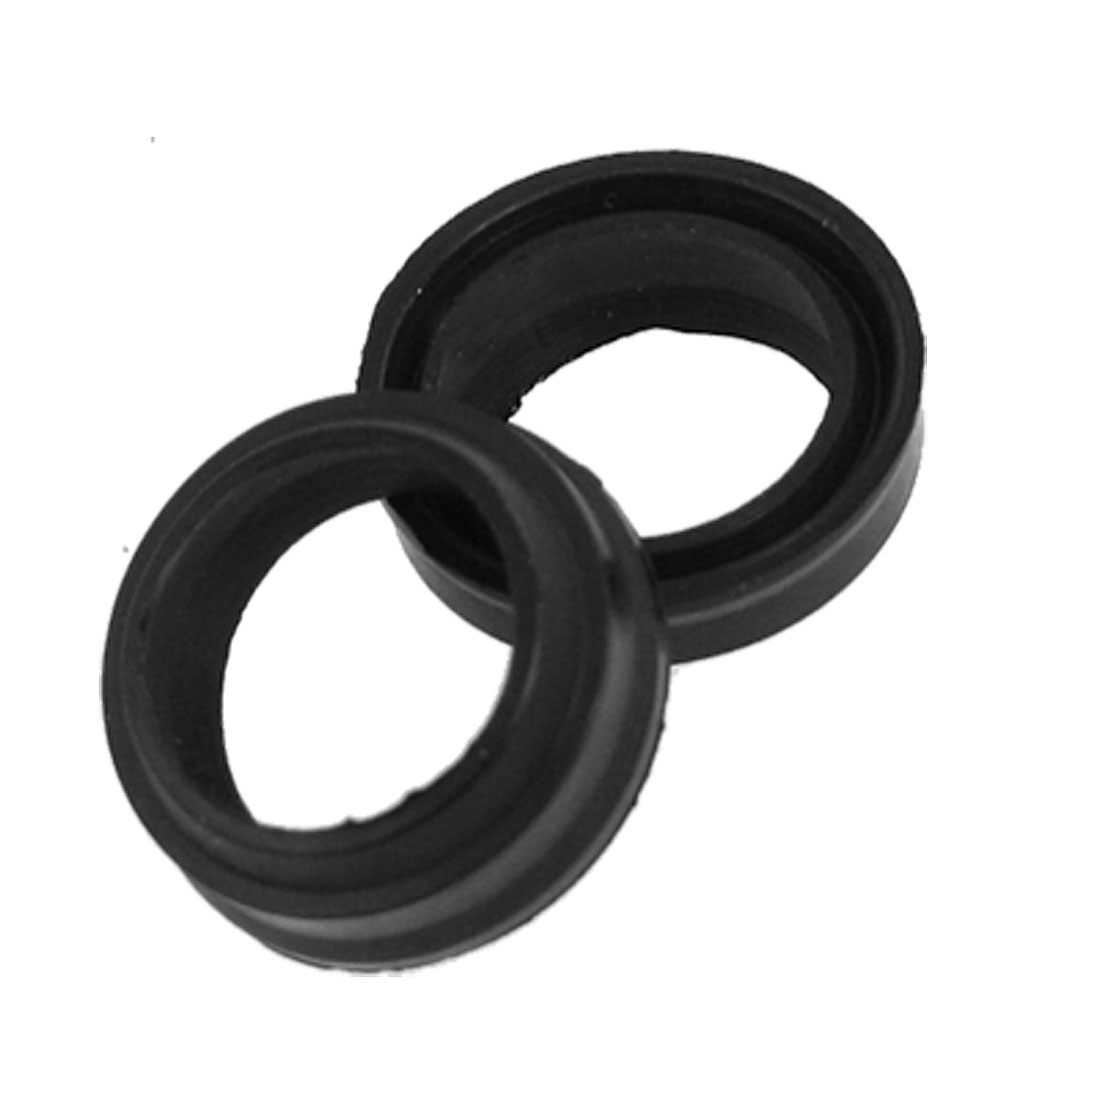 2 Pcs 12mm x 16mm Rubber Pneumatic Air Sealing Seal Rings Gaskets